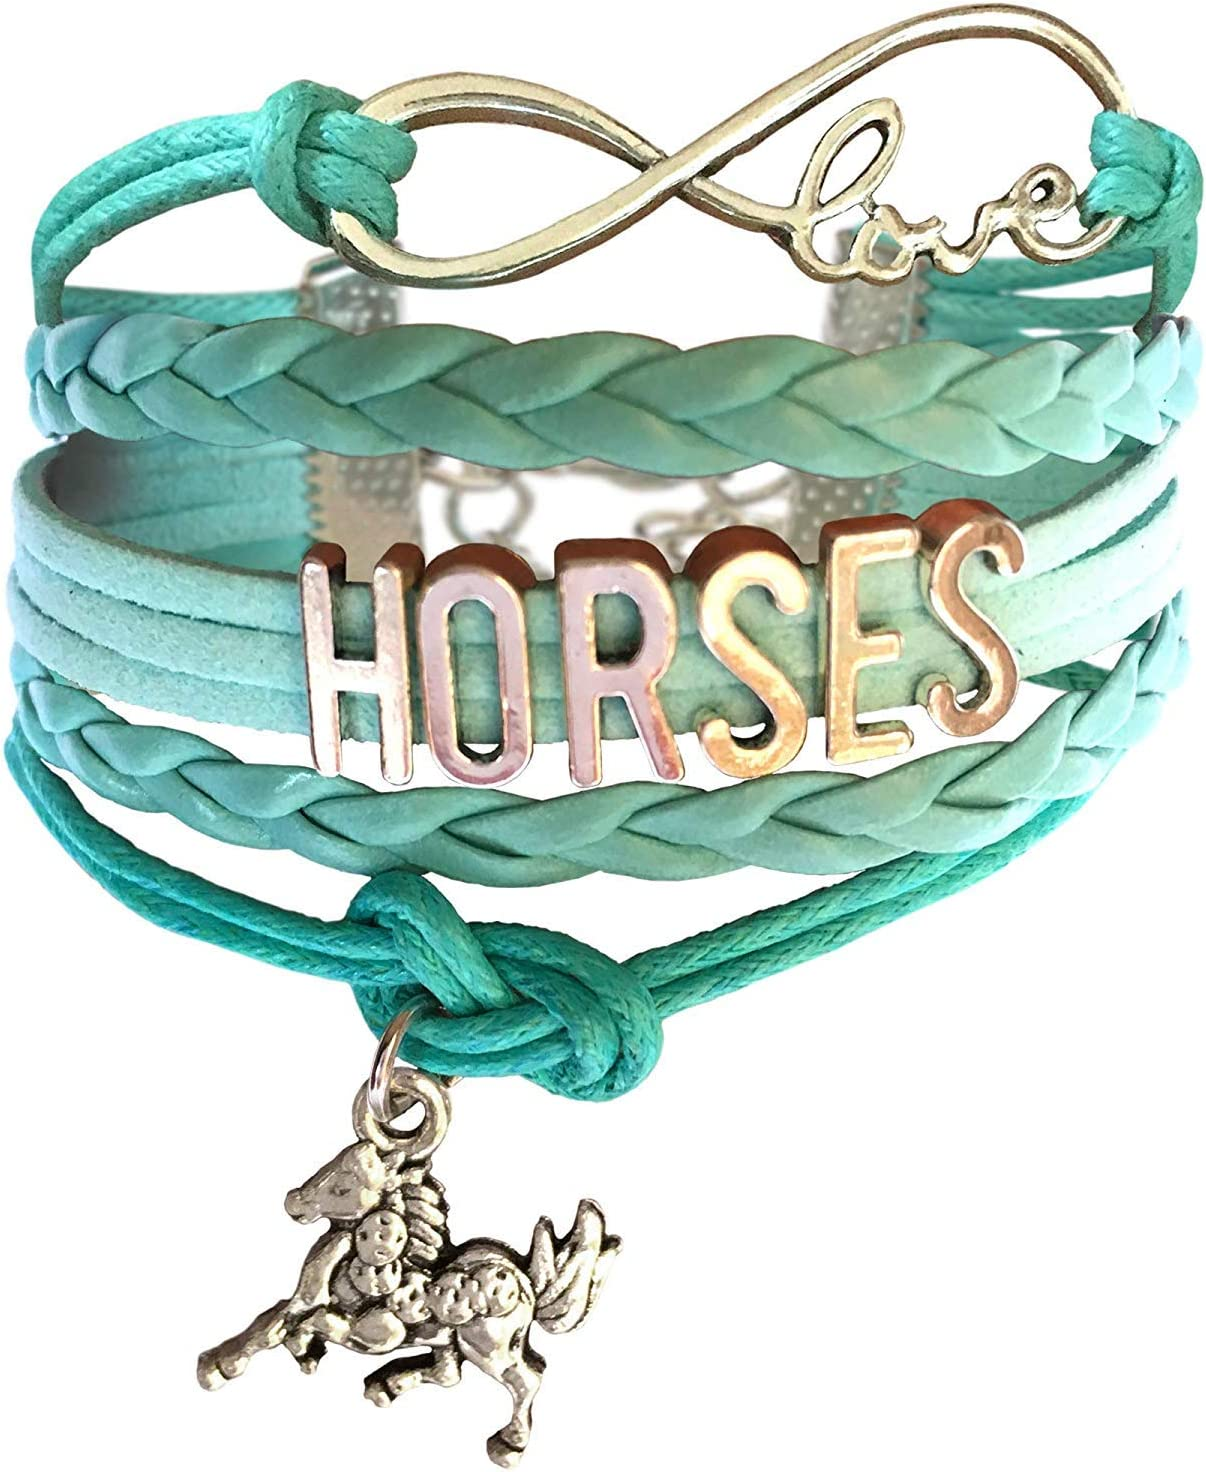 biaofeng Horses Bracelets Horse Charm-Girls Horse Lover Jewelry Gifts-Braided Adjusted Pink